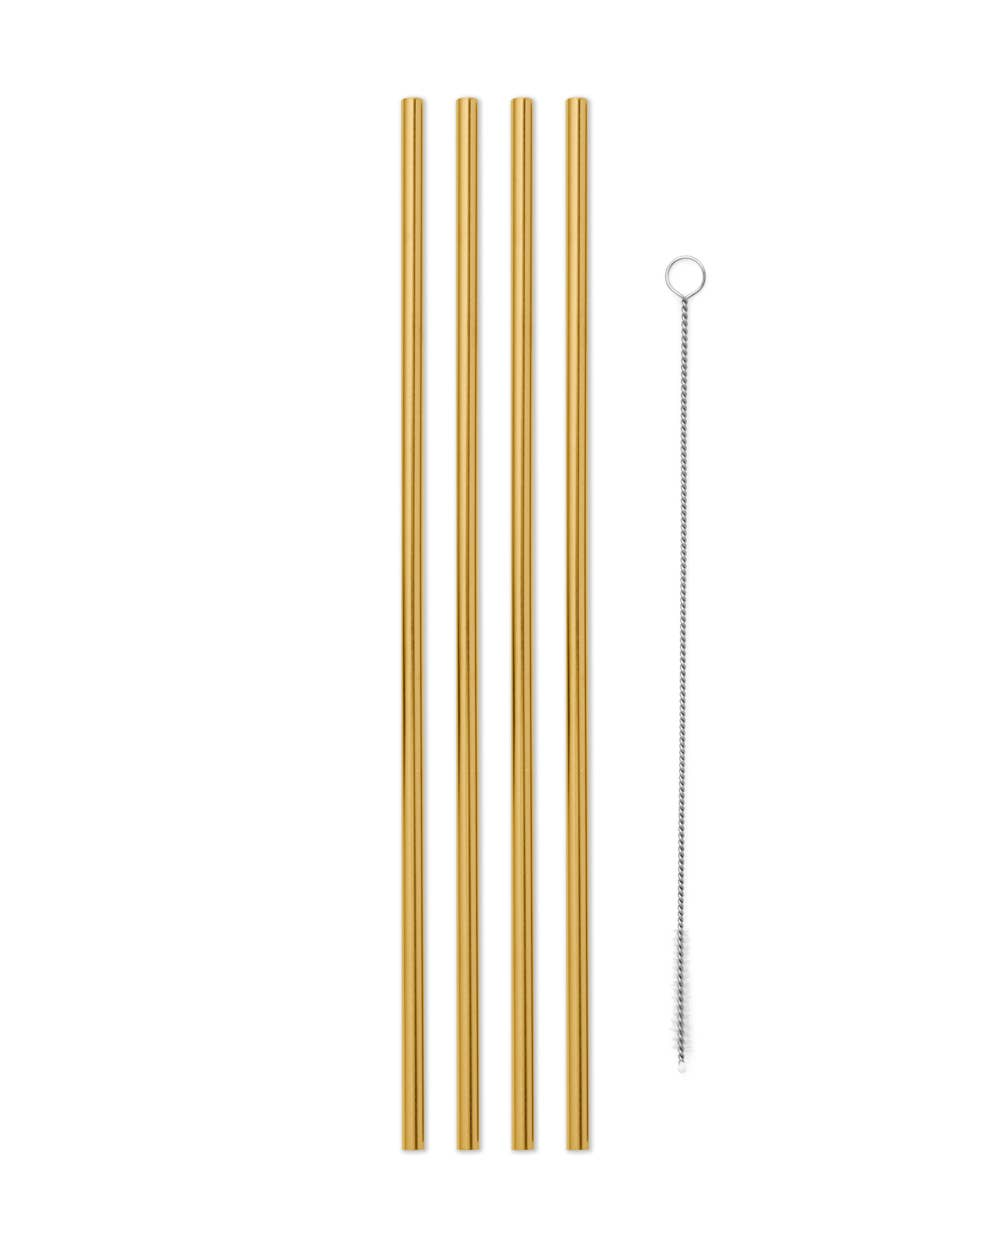 Porter 10in Metal Straws, Set of 4 with Cleaner